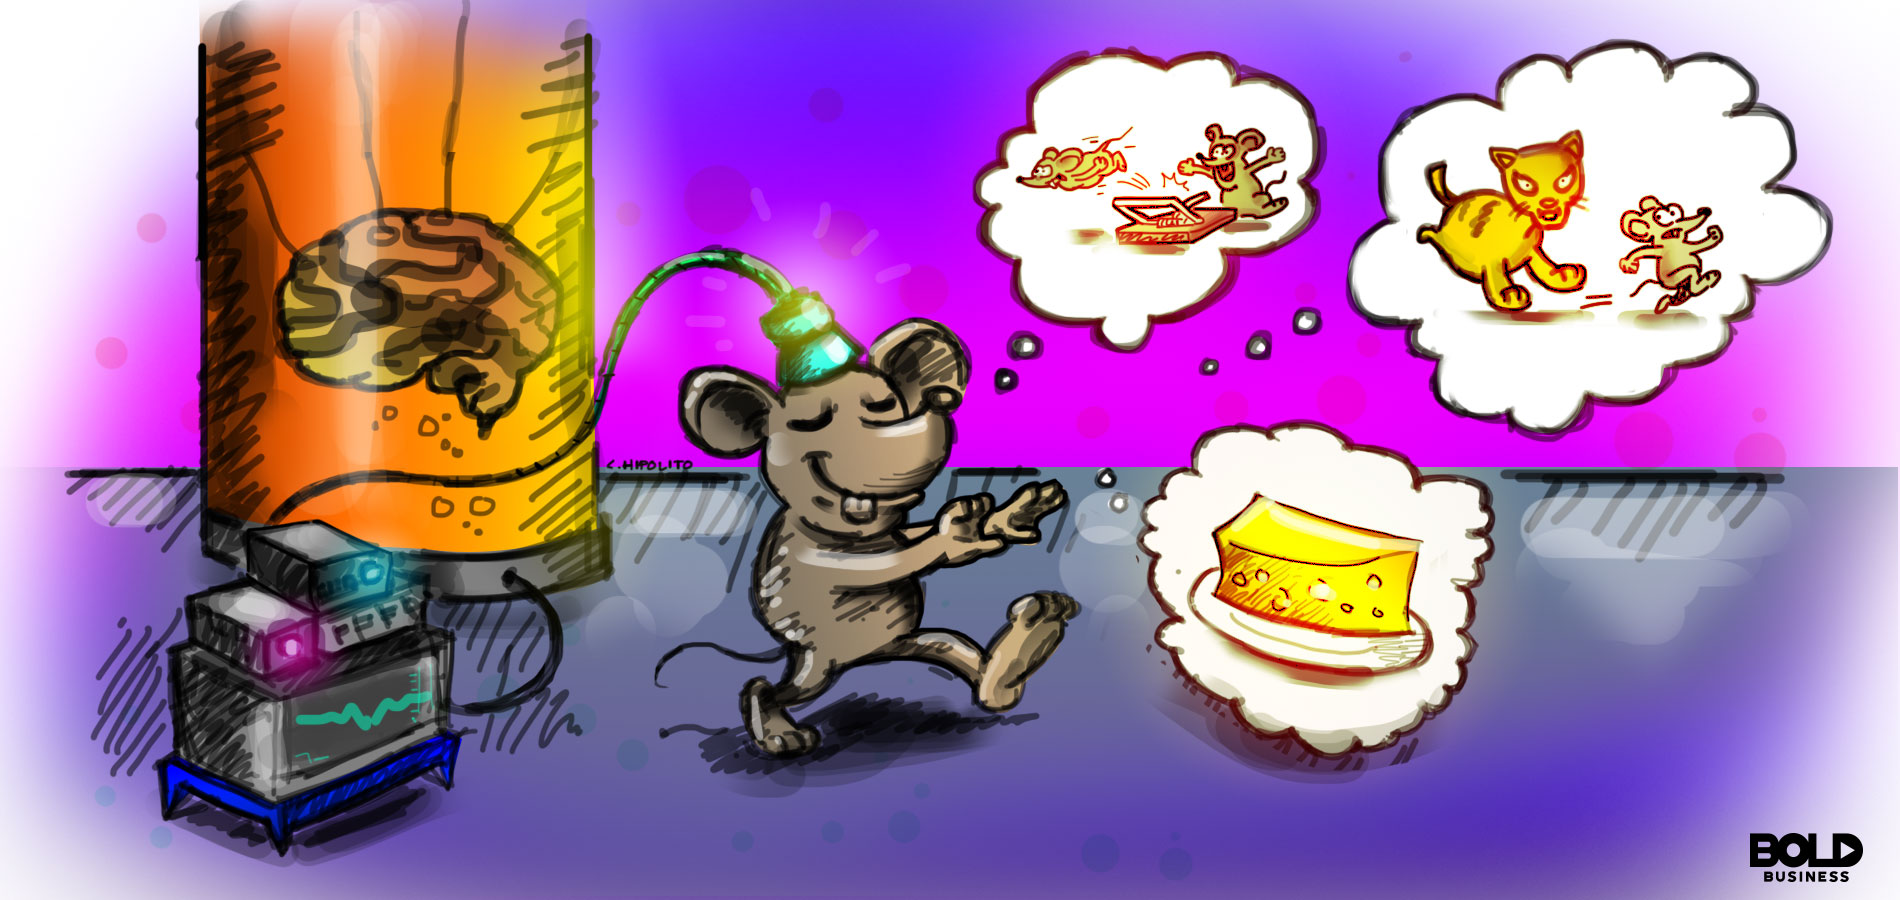 Cartoon of a lab mouse envisioning cheese and cats.